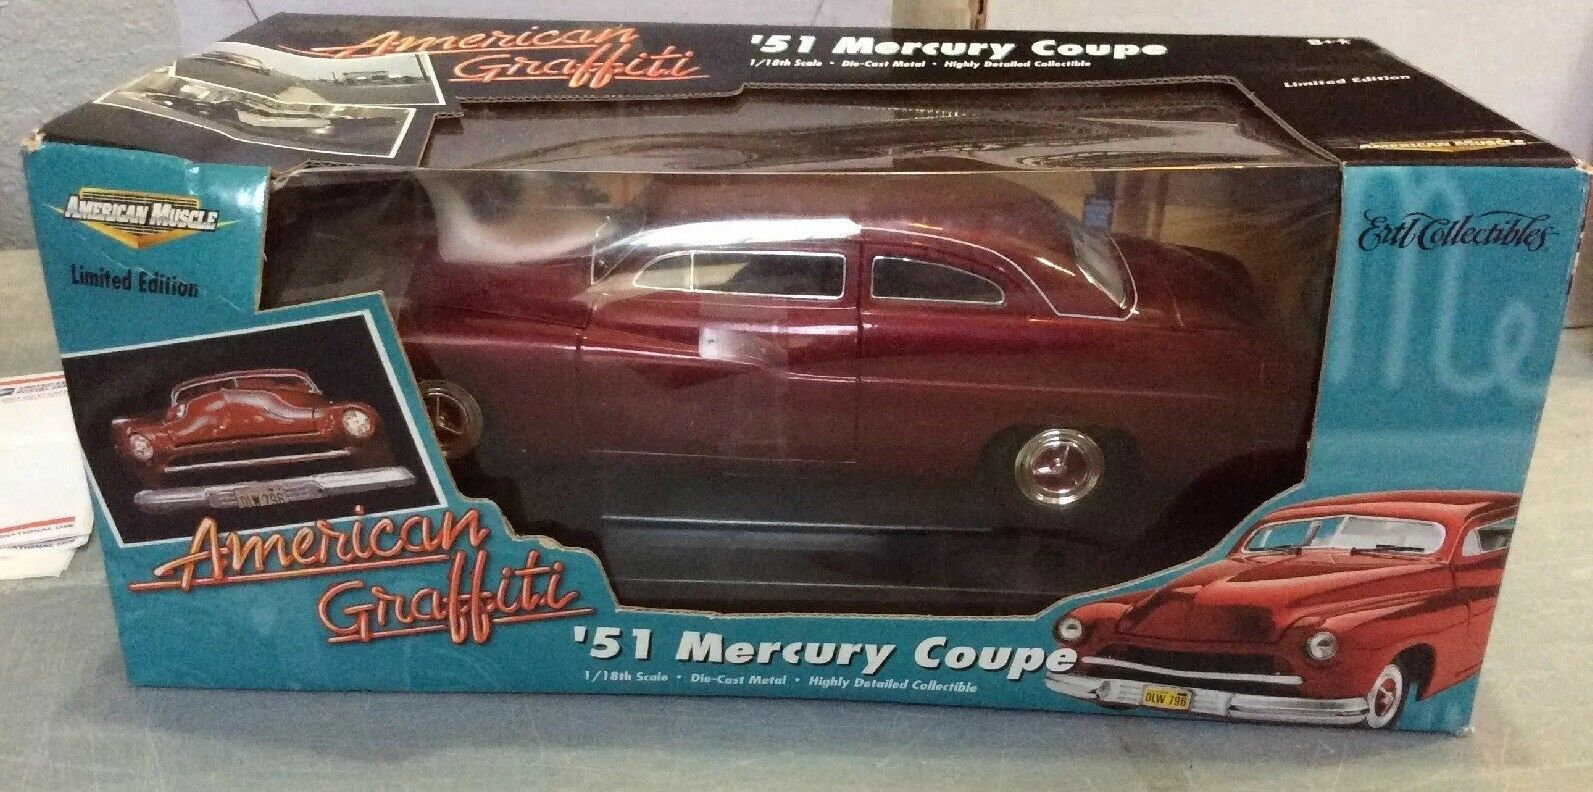 1 18 SCALE ERTL AMERICAN MUSCLE AMERICAN GRAFFITI '51 MERCURY COUPE